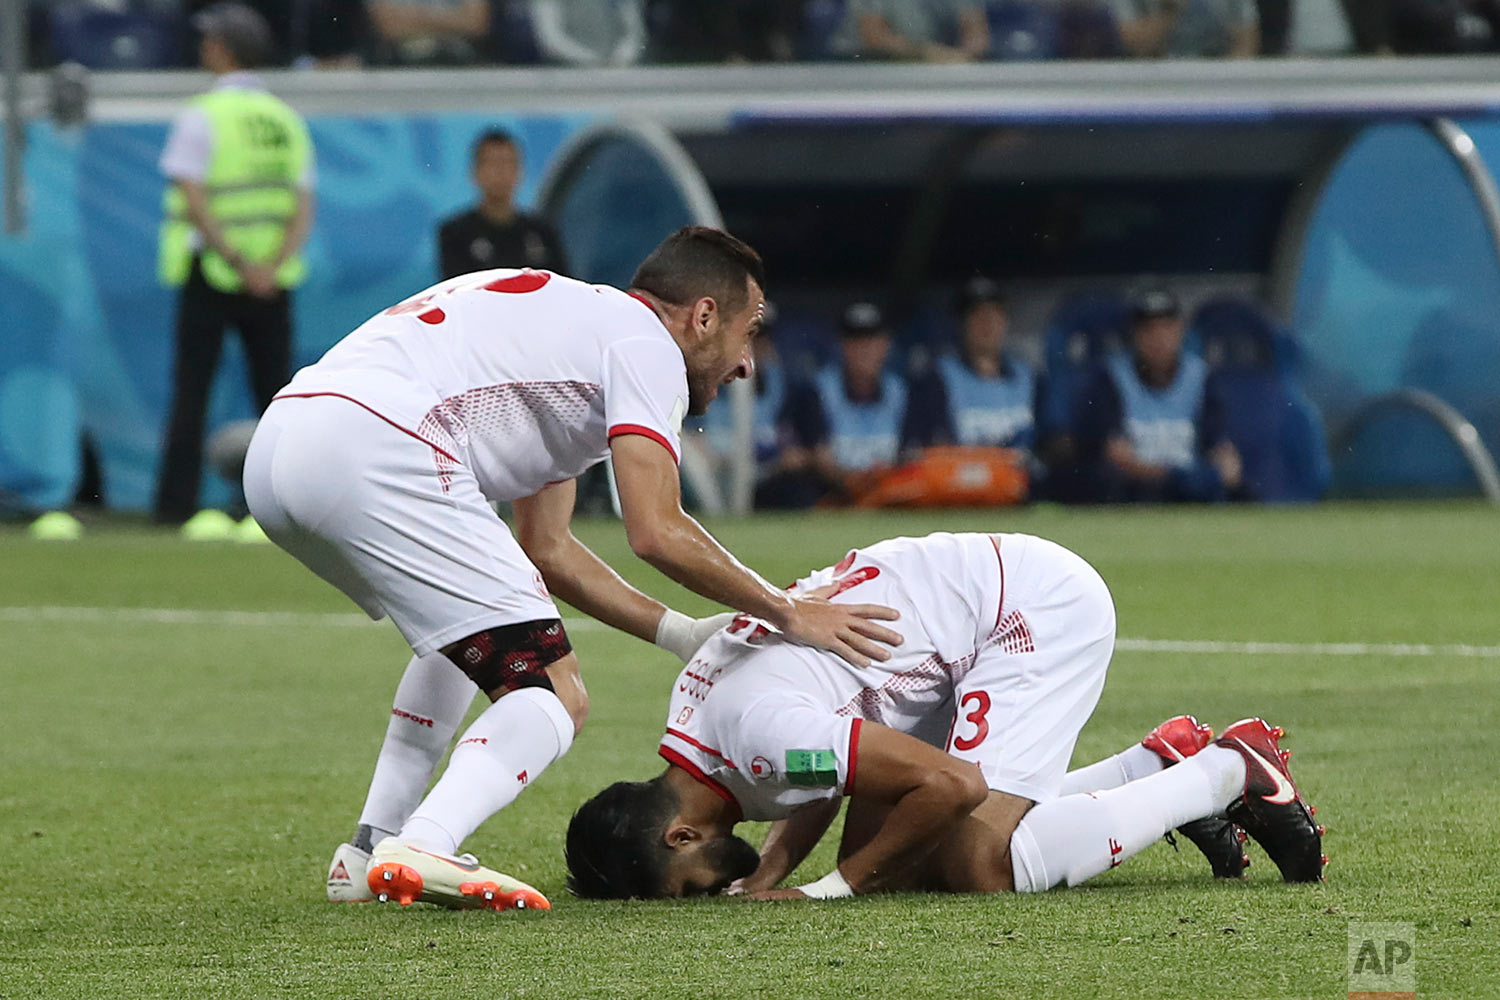 Tunisia's Ferjani Sassi, right, kisses the pitch as he celebrates after scoring during the group G match between Tunisia and England at the 2018 soccer World Cup in the Volgograd Arena in Volgograd, Russia, Monday, June 18, 2018. (AP Photo/Thanassis Stavrakis)